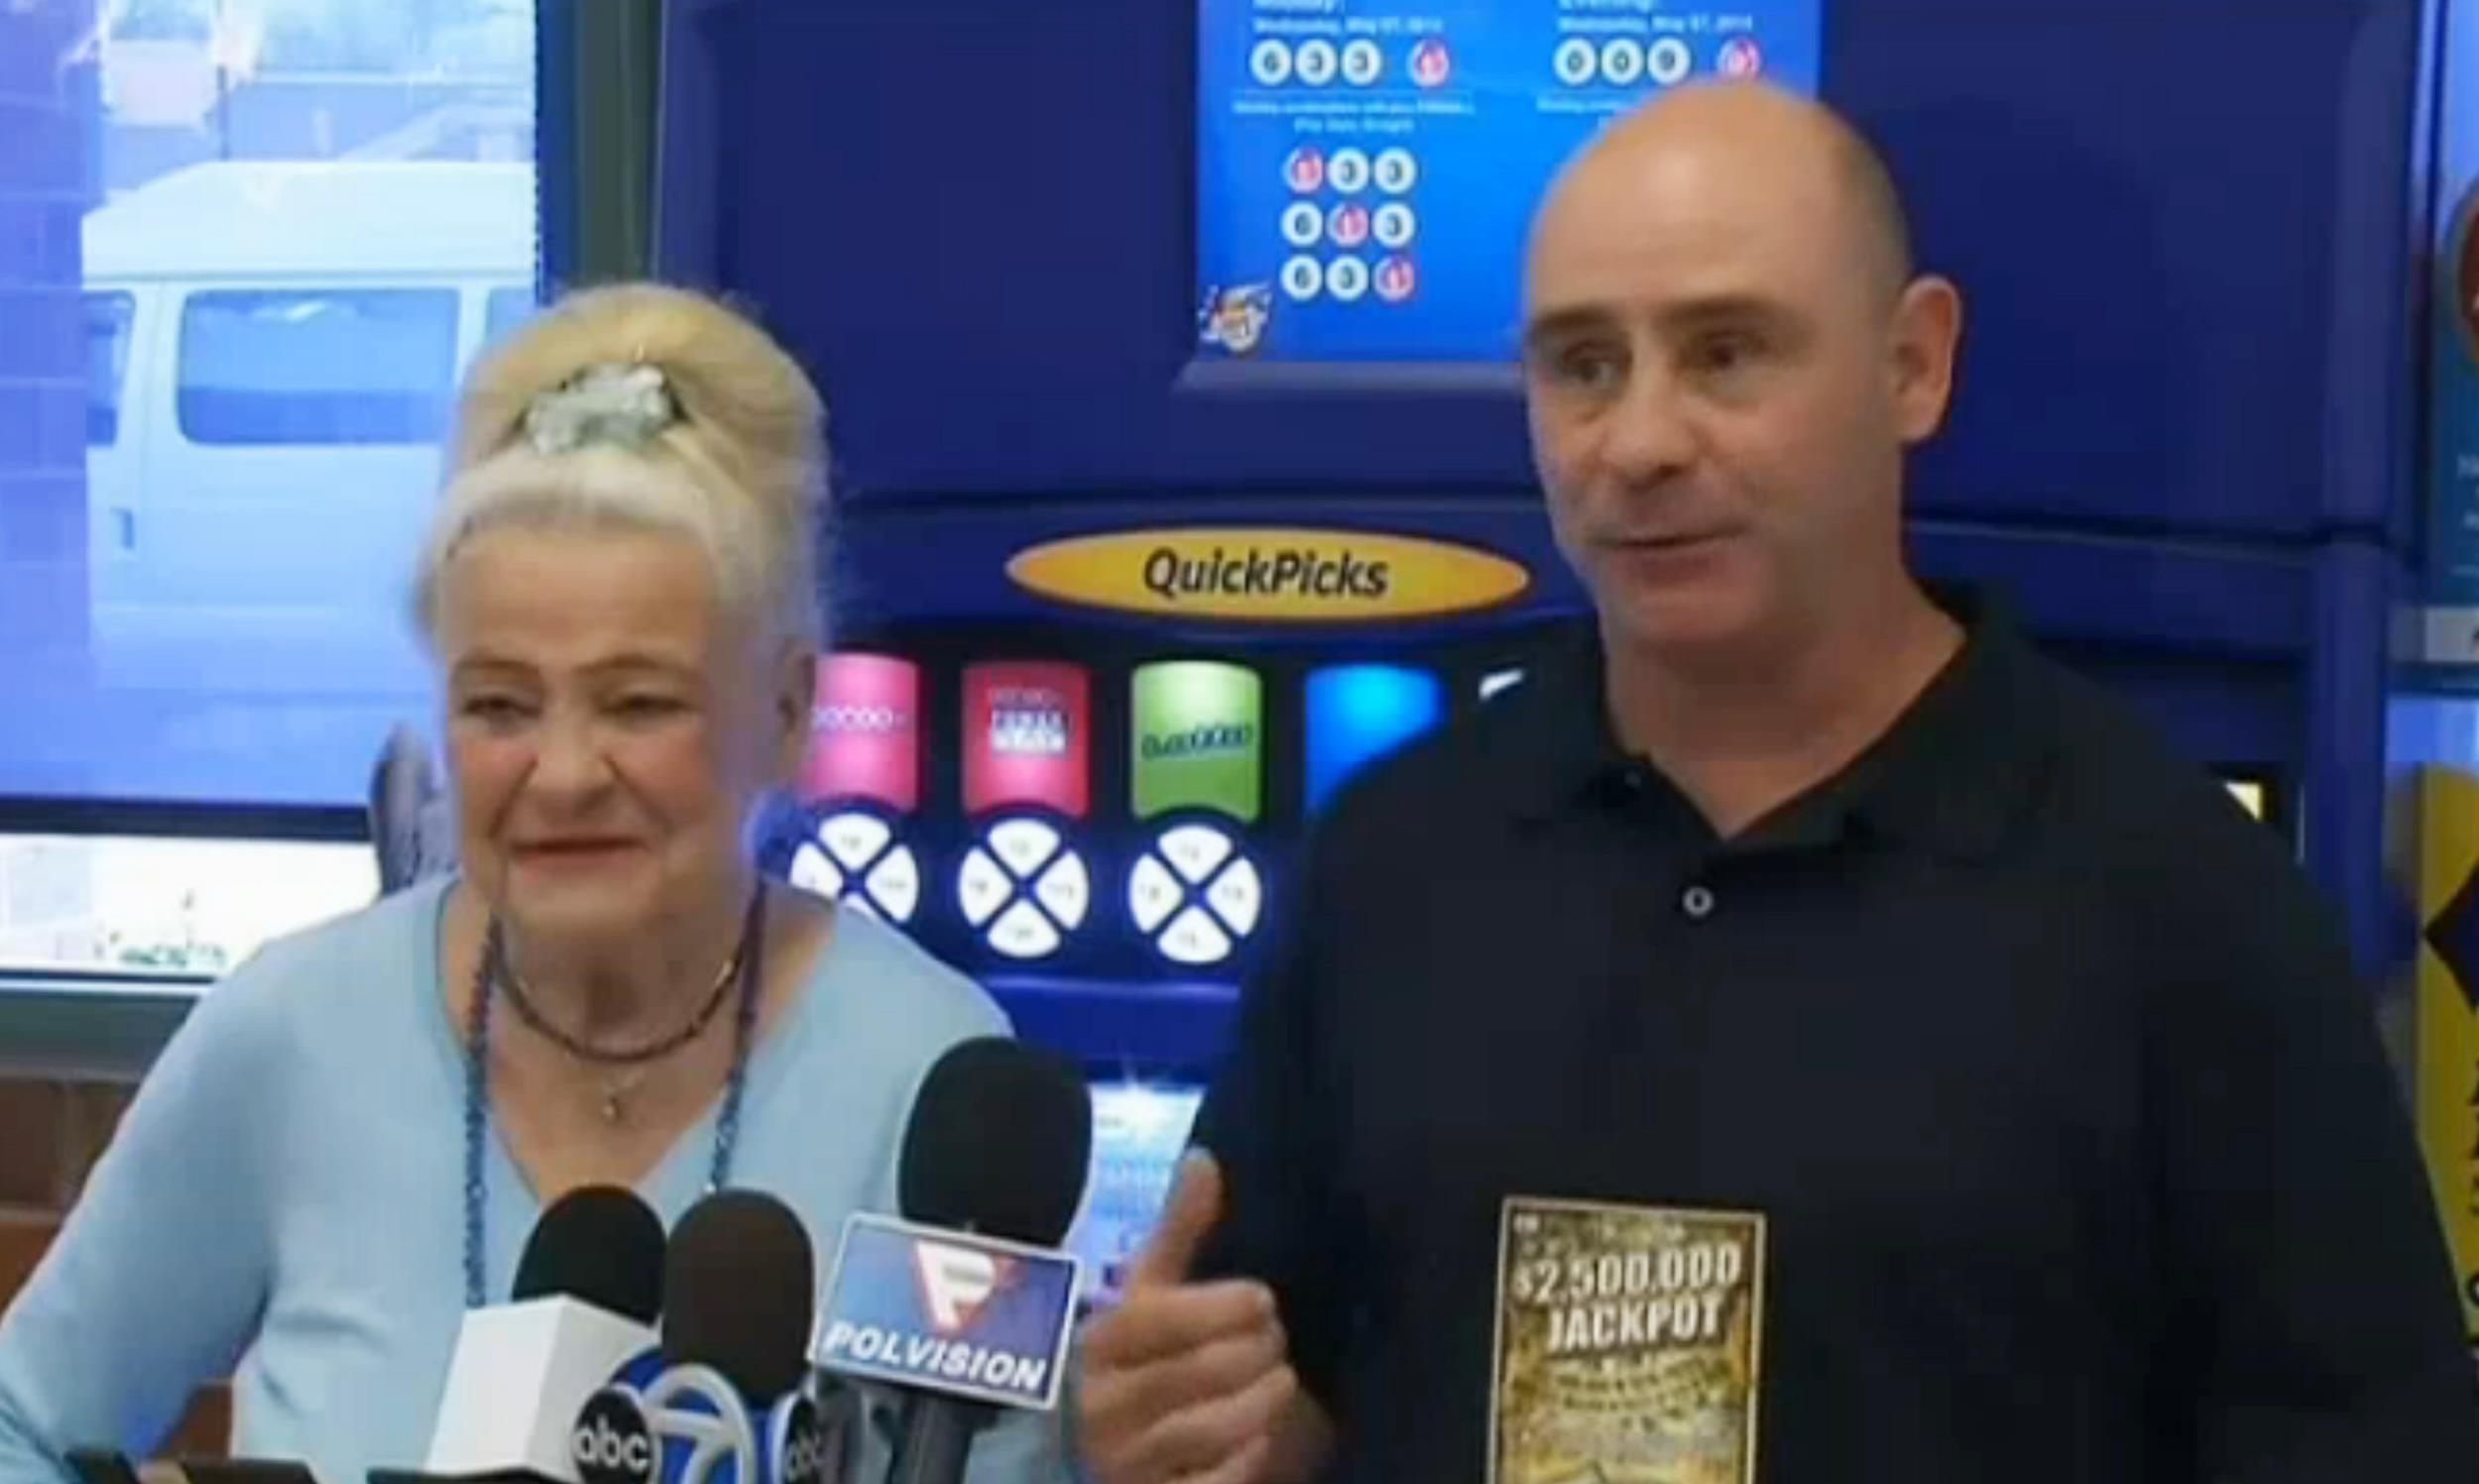 Image: Daniel Stojak won $2.5 million from a $10 Illinois Lottery scratch off ticket that his mother, Shirley, bought for him on April 1.